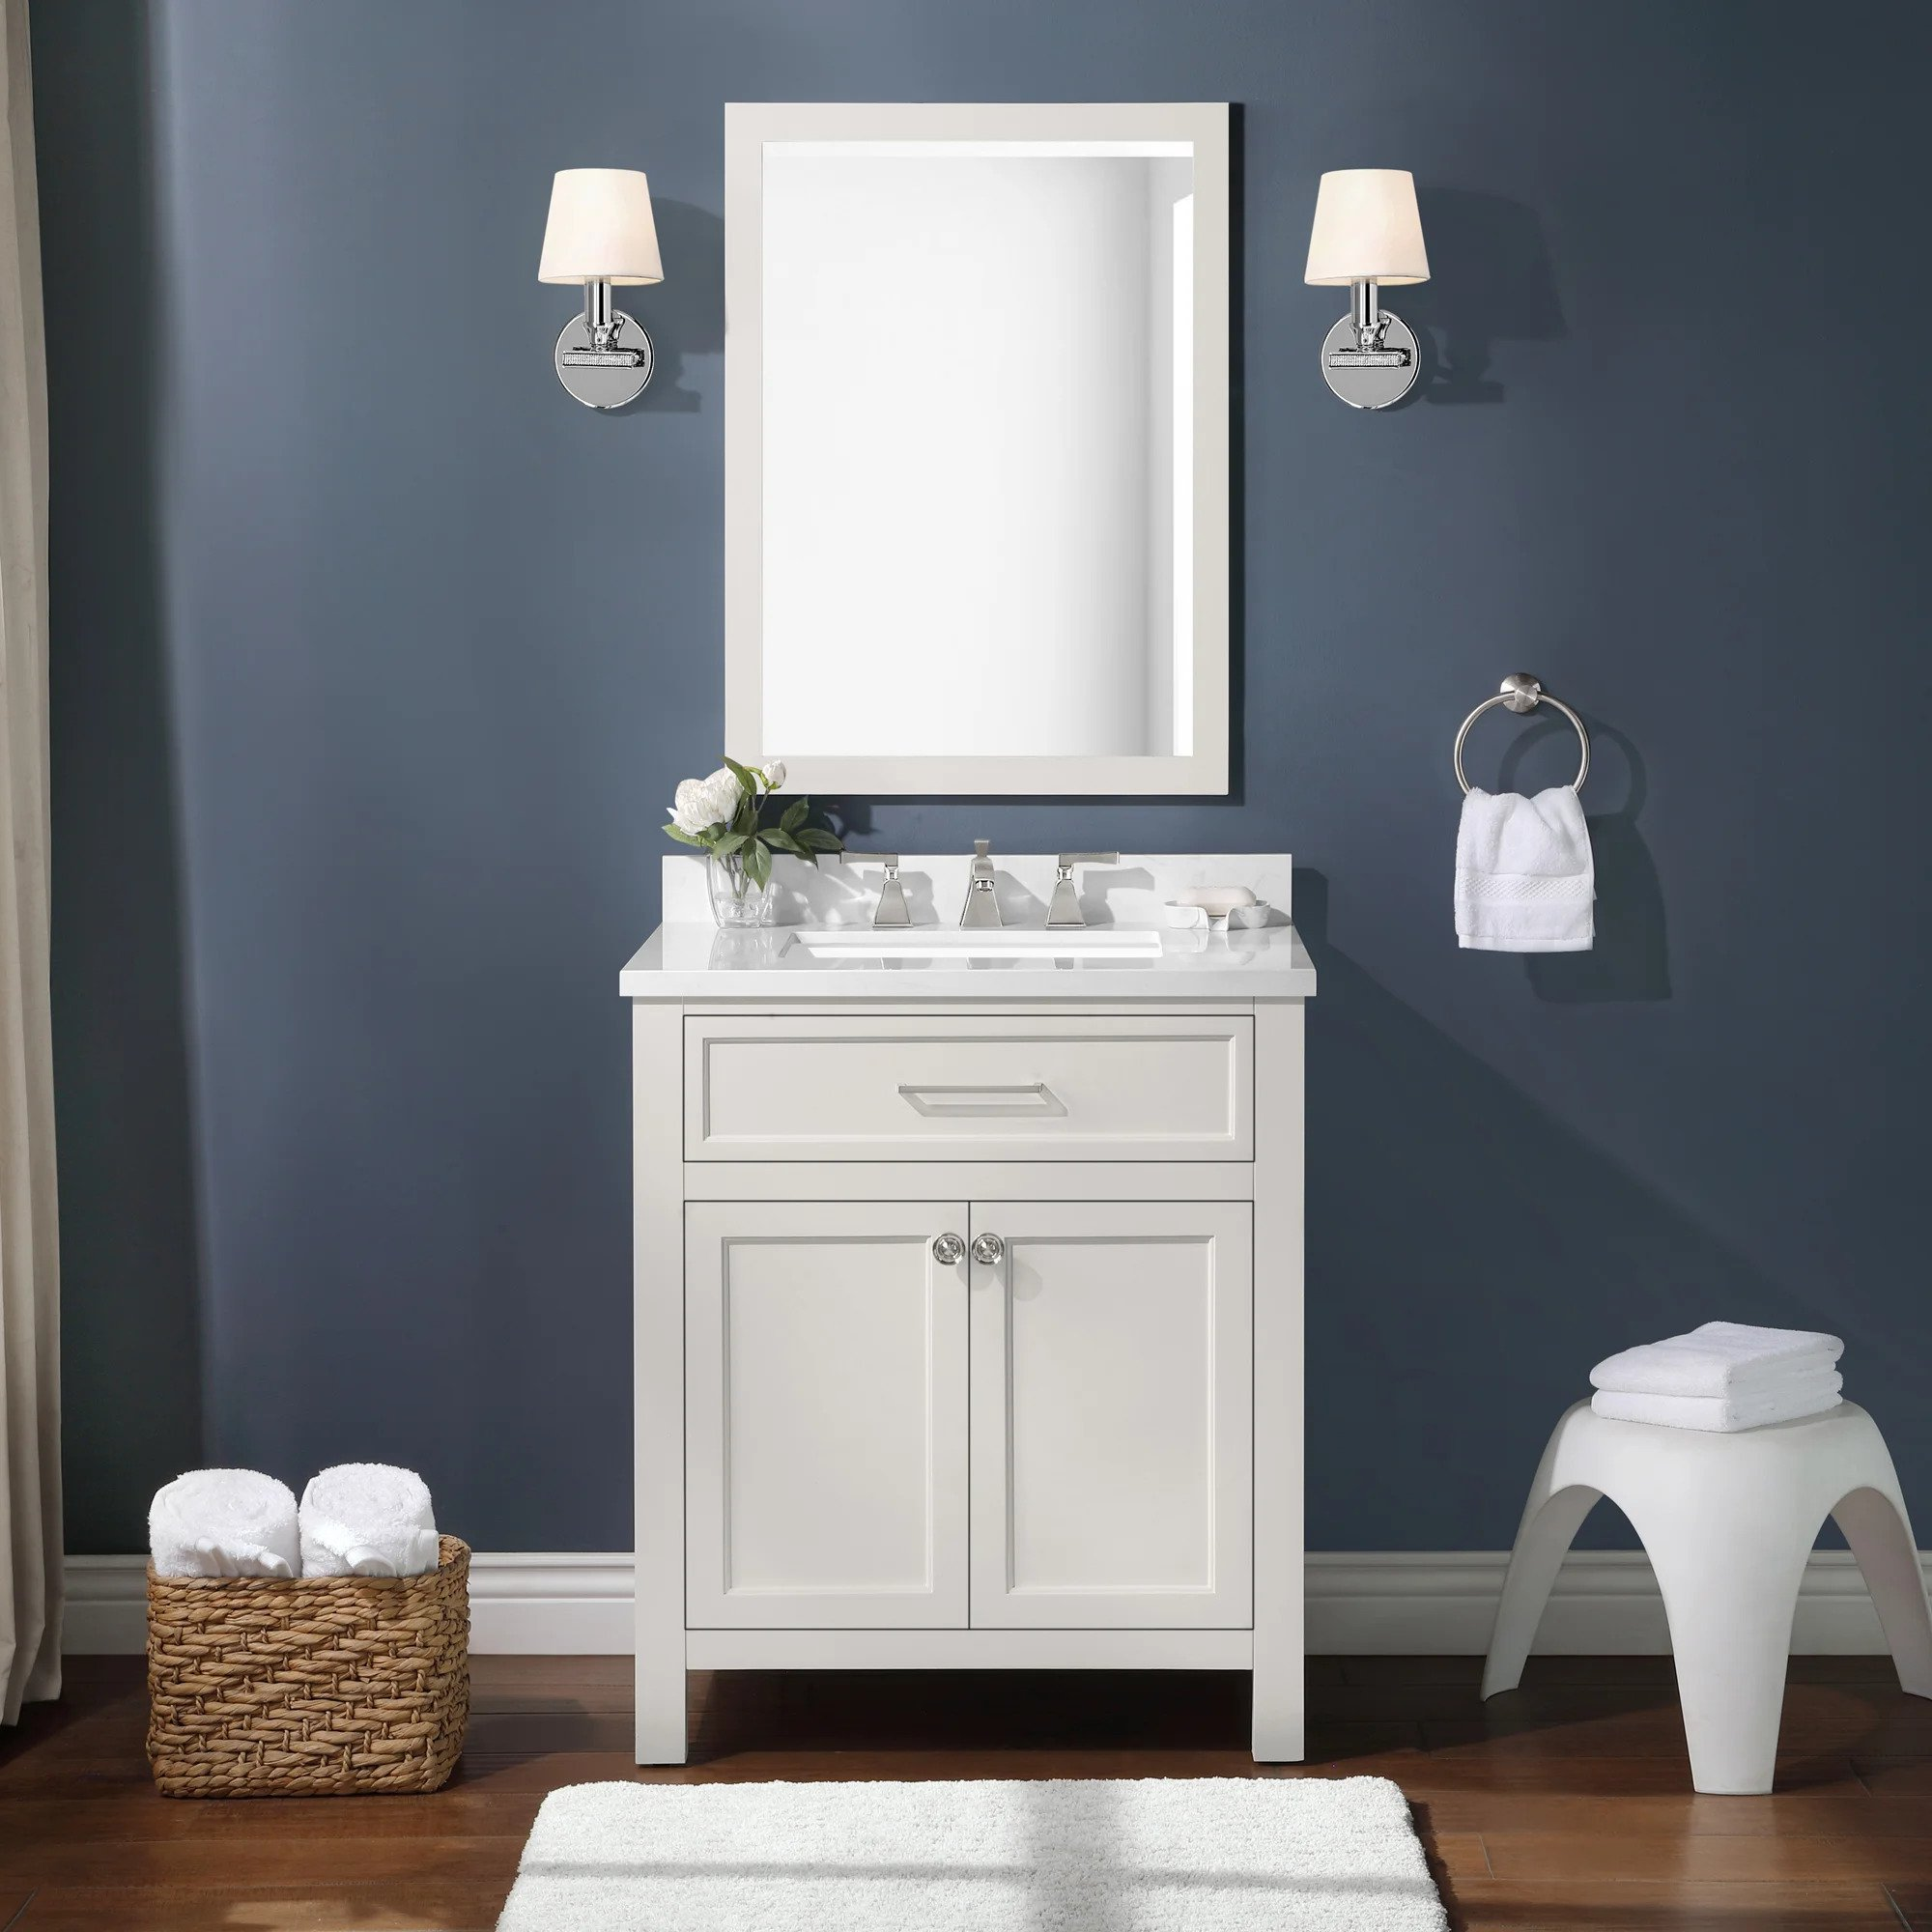 Martha Stewart Bedford Oakland 30 inch Single Bathroom Vanity Set